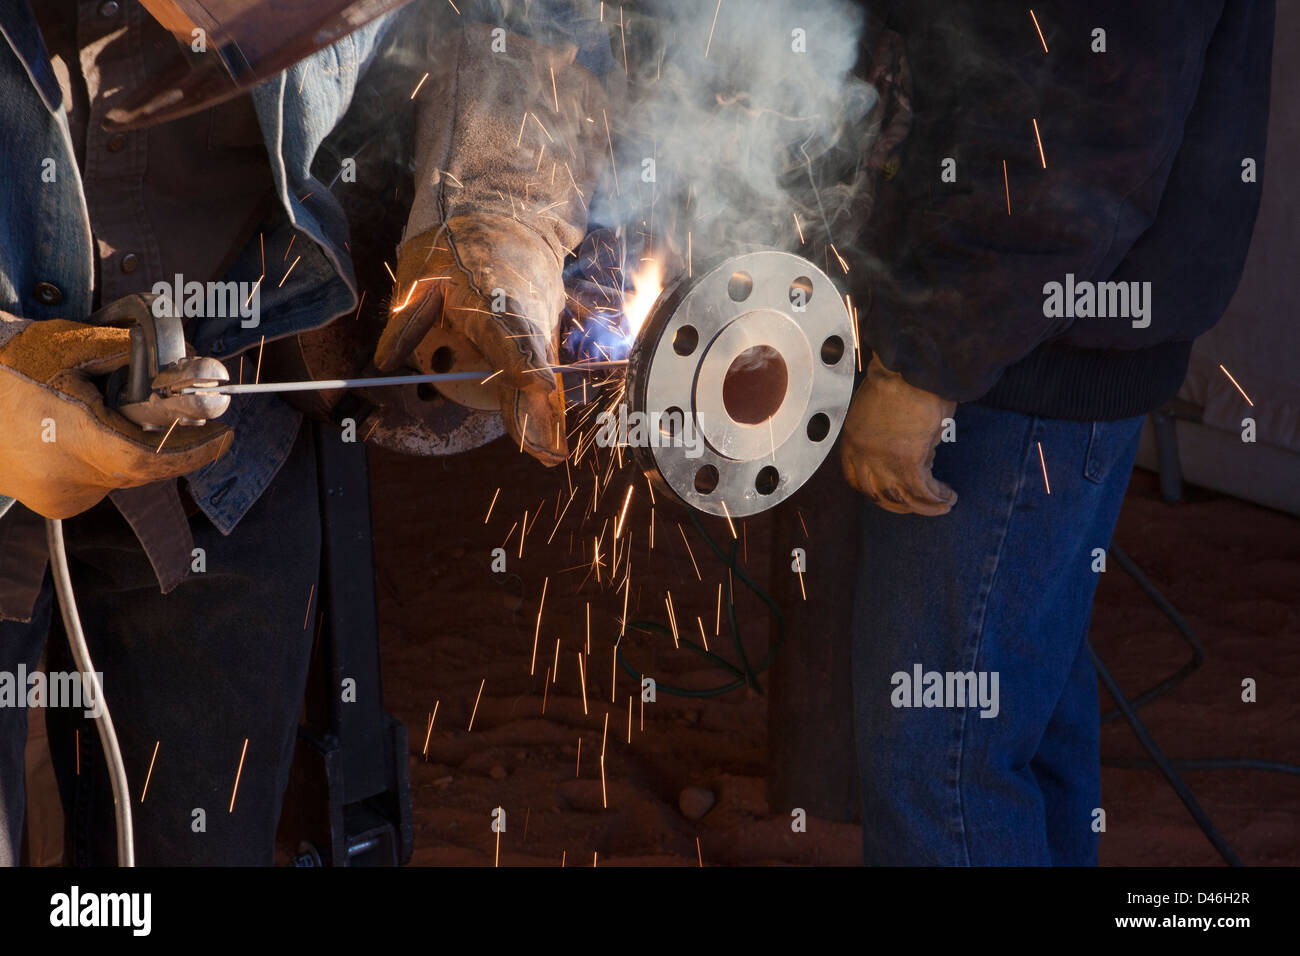 Welder Working on a Oil Pipelines - Stock Image